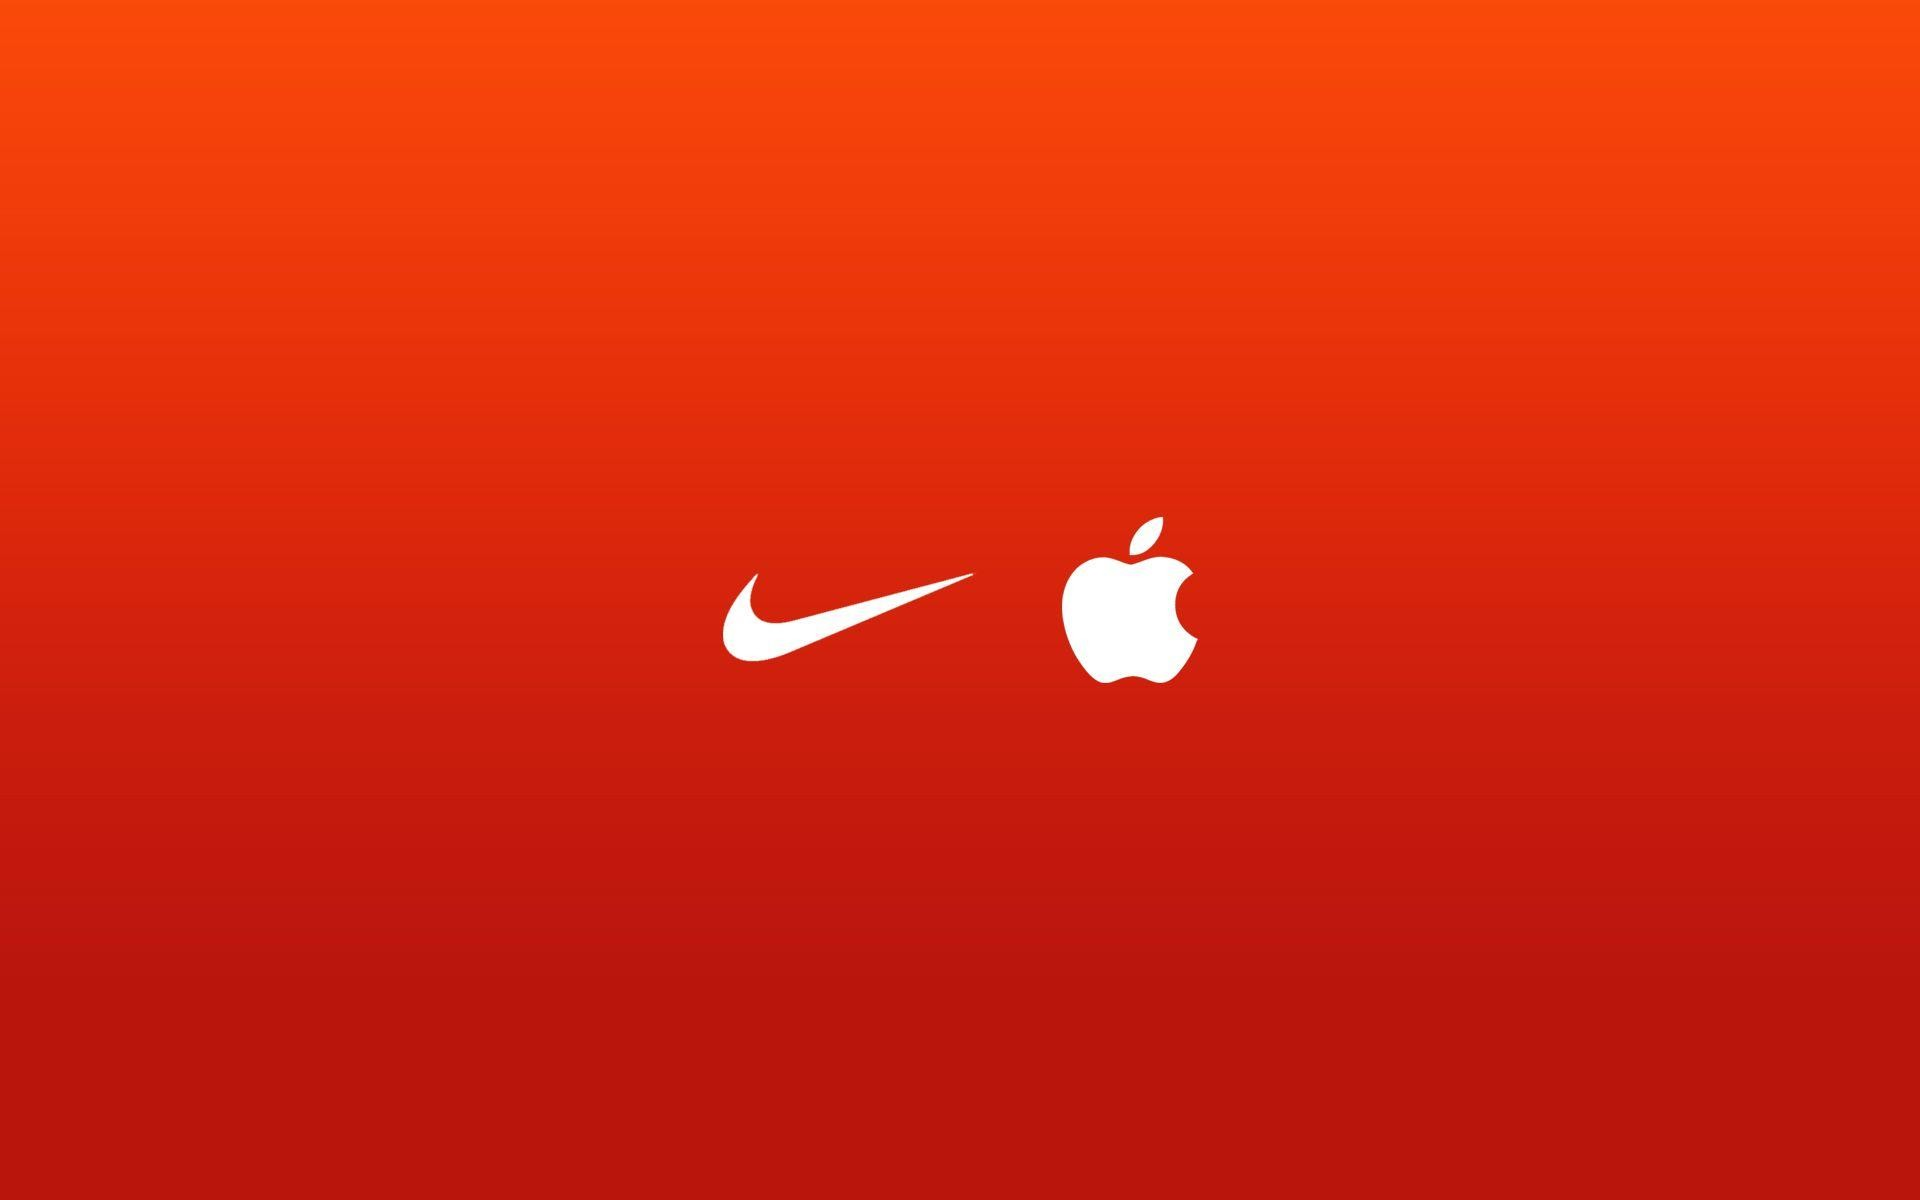 Res: 1920x1200, High Quality For Red Bandana Wallpaper Resolution Androids Source · Nike  Wallpapers IPhone ModaFinilsale